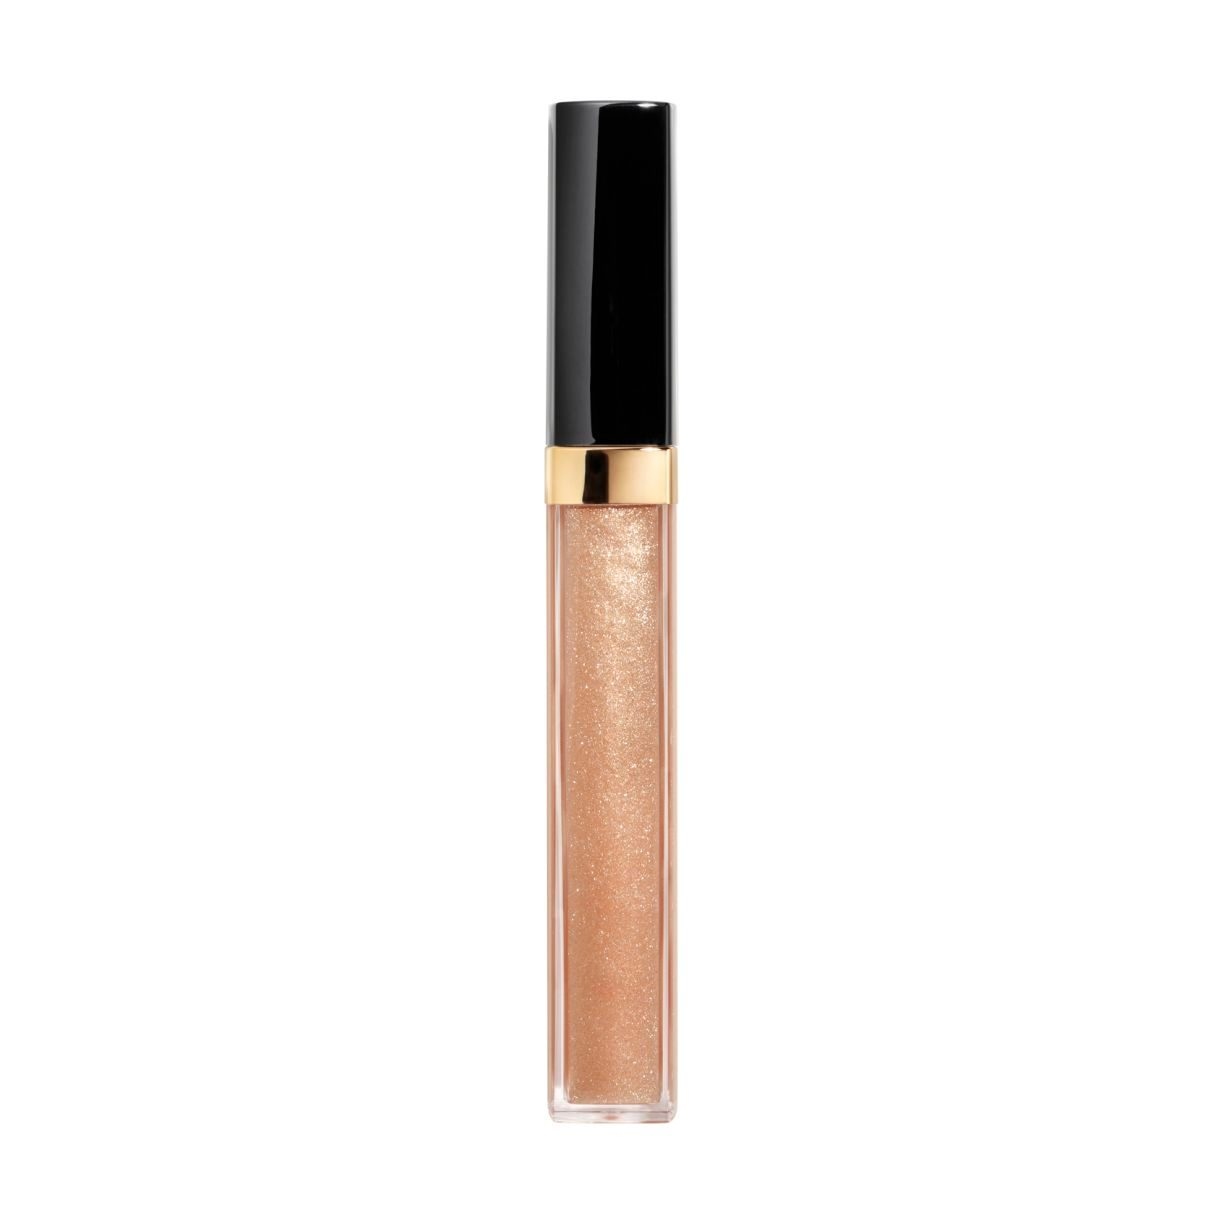 ROUGE COCO GLOSS MOISTURIZING GLOSSIMER 712 - MELTED HONEY